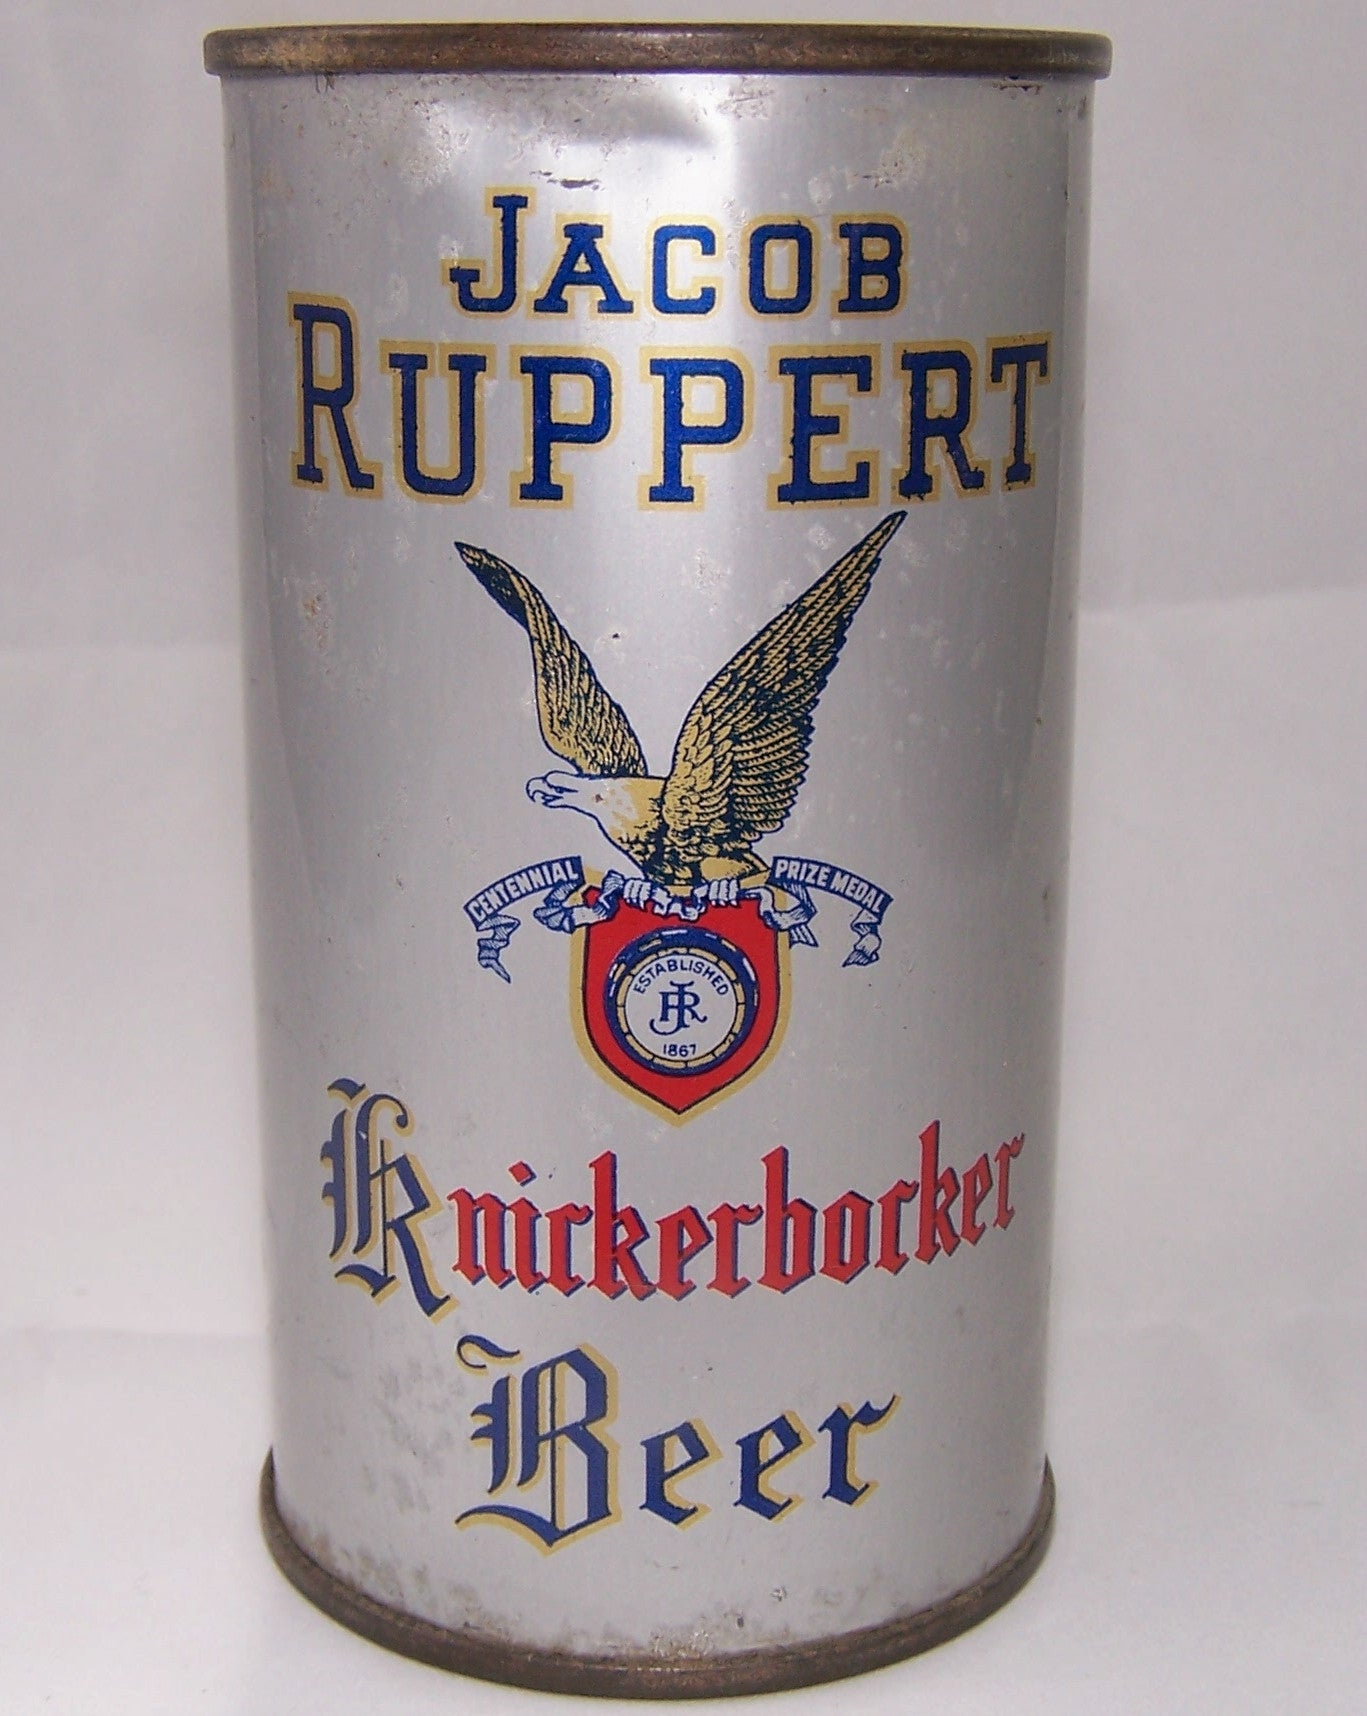 Jacob Ruppert Knickerbocker Beer, USBC 126-1, Grade 1- Sold on 07/27/18